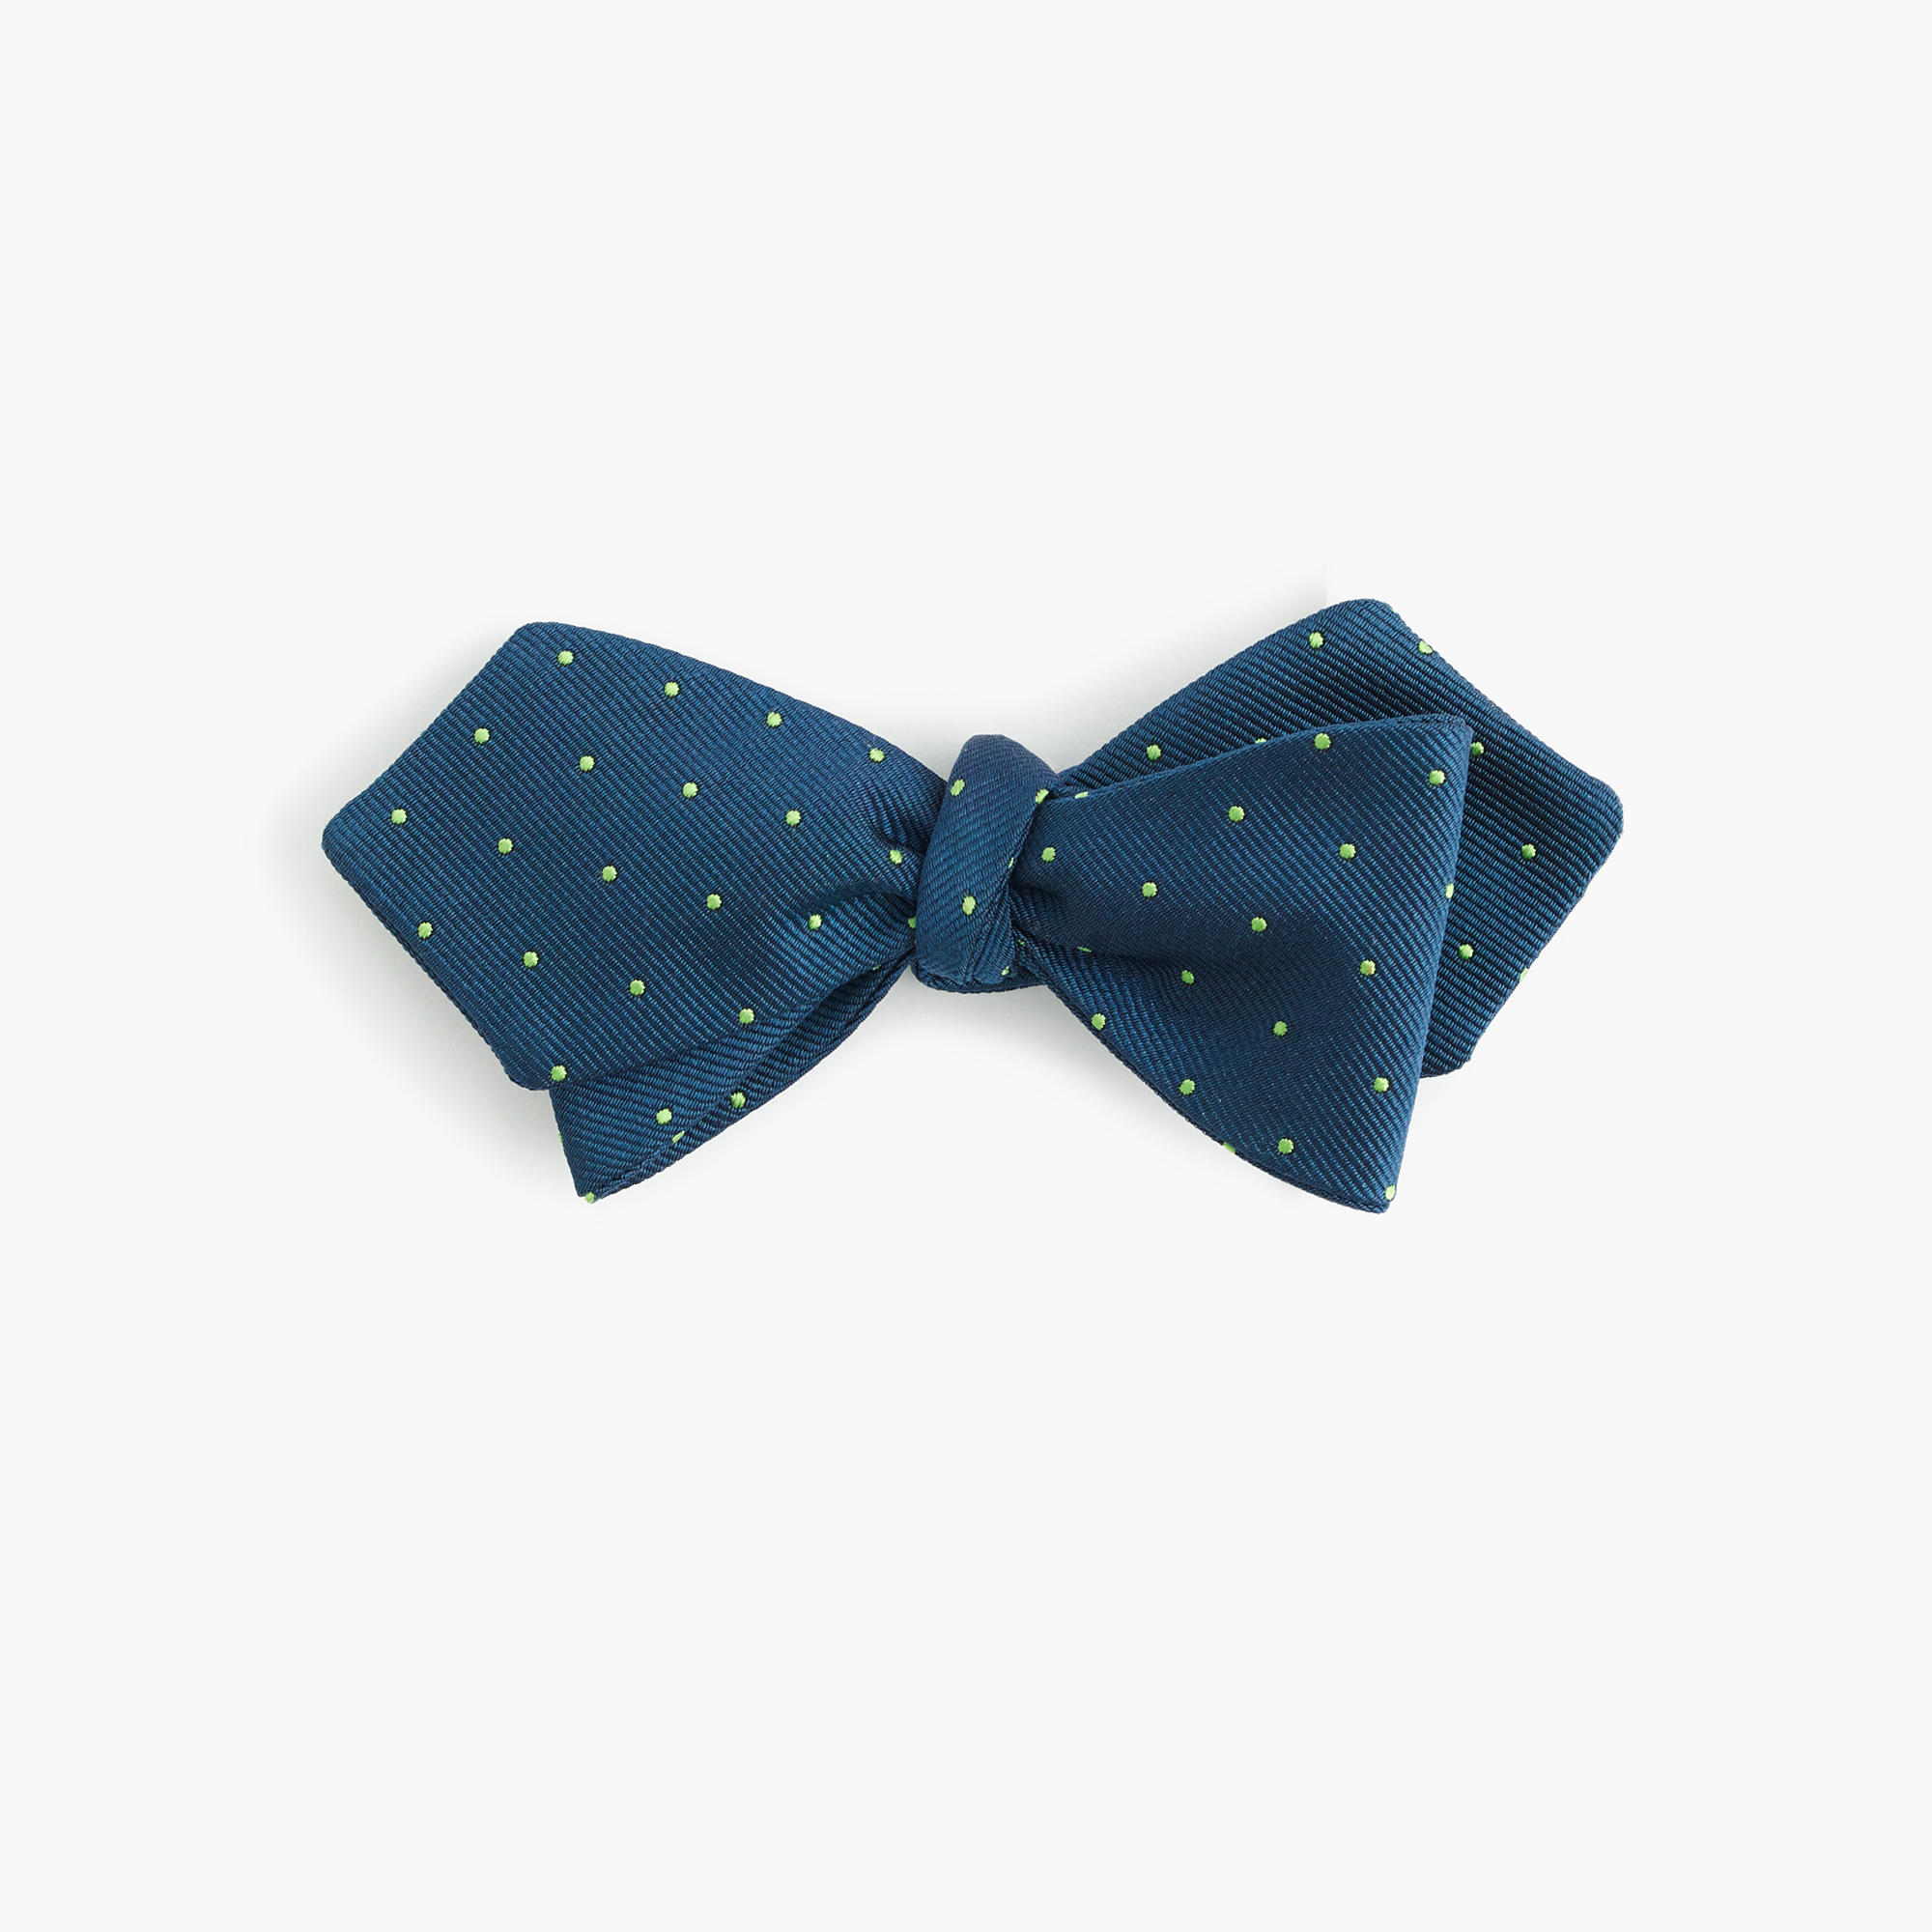 Express offers the latest colors, patterns, and styles for ties & bow ties, so find your favorites and be the best dressed at any party. These ties can be dressed up or .